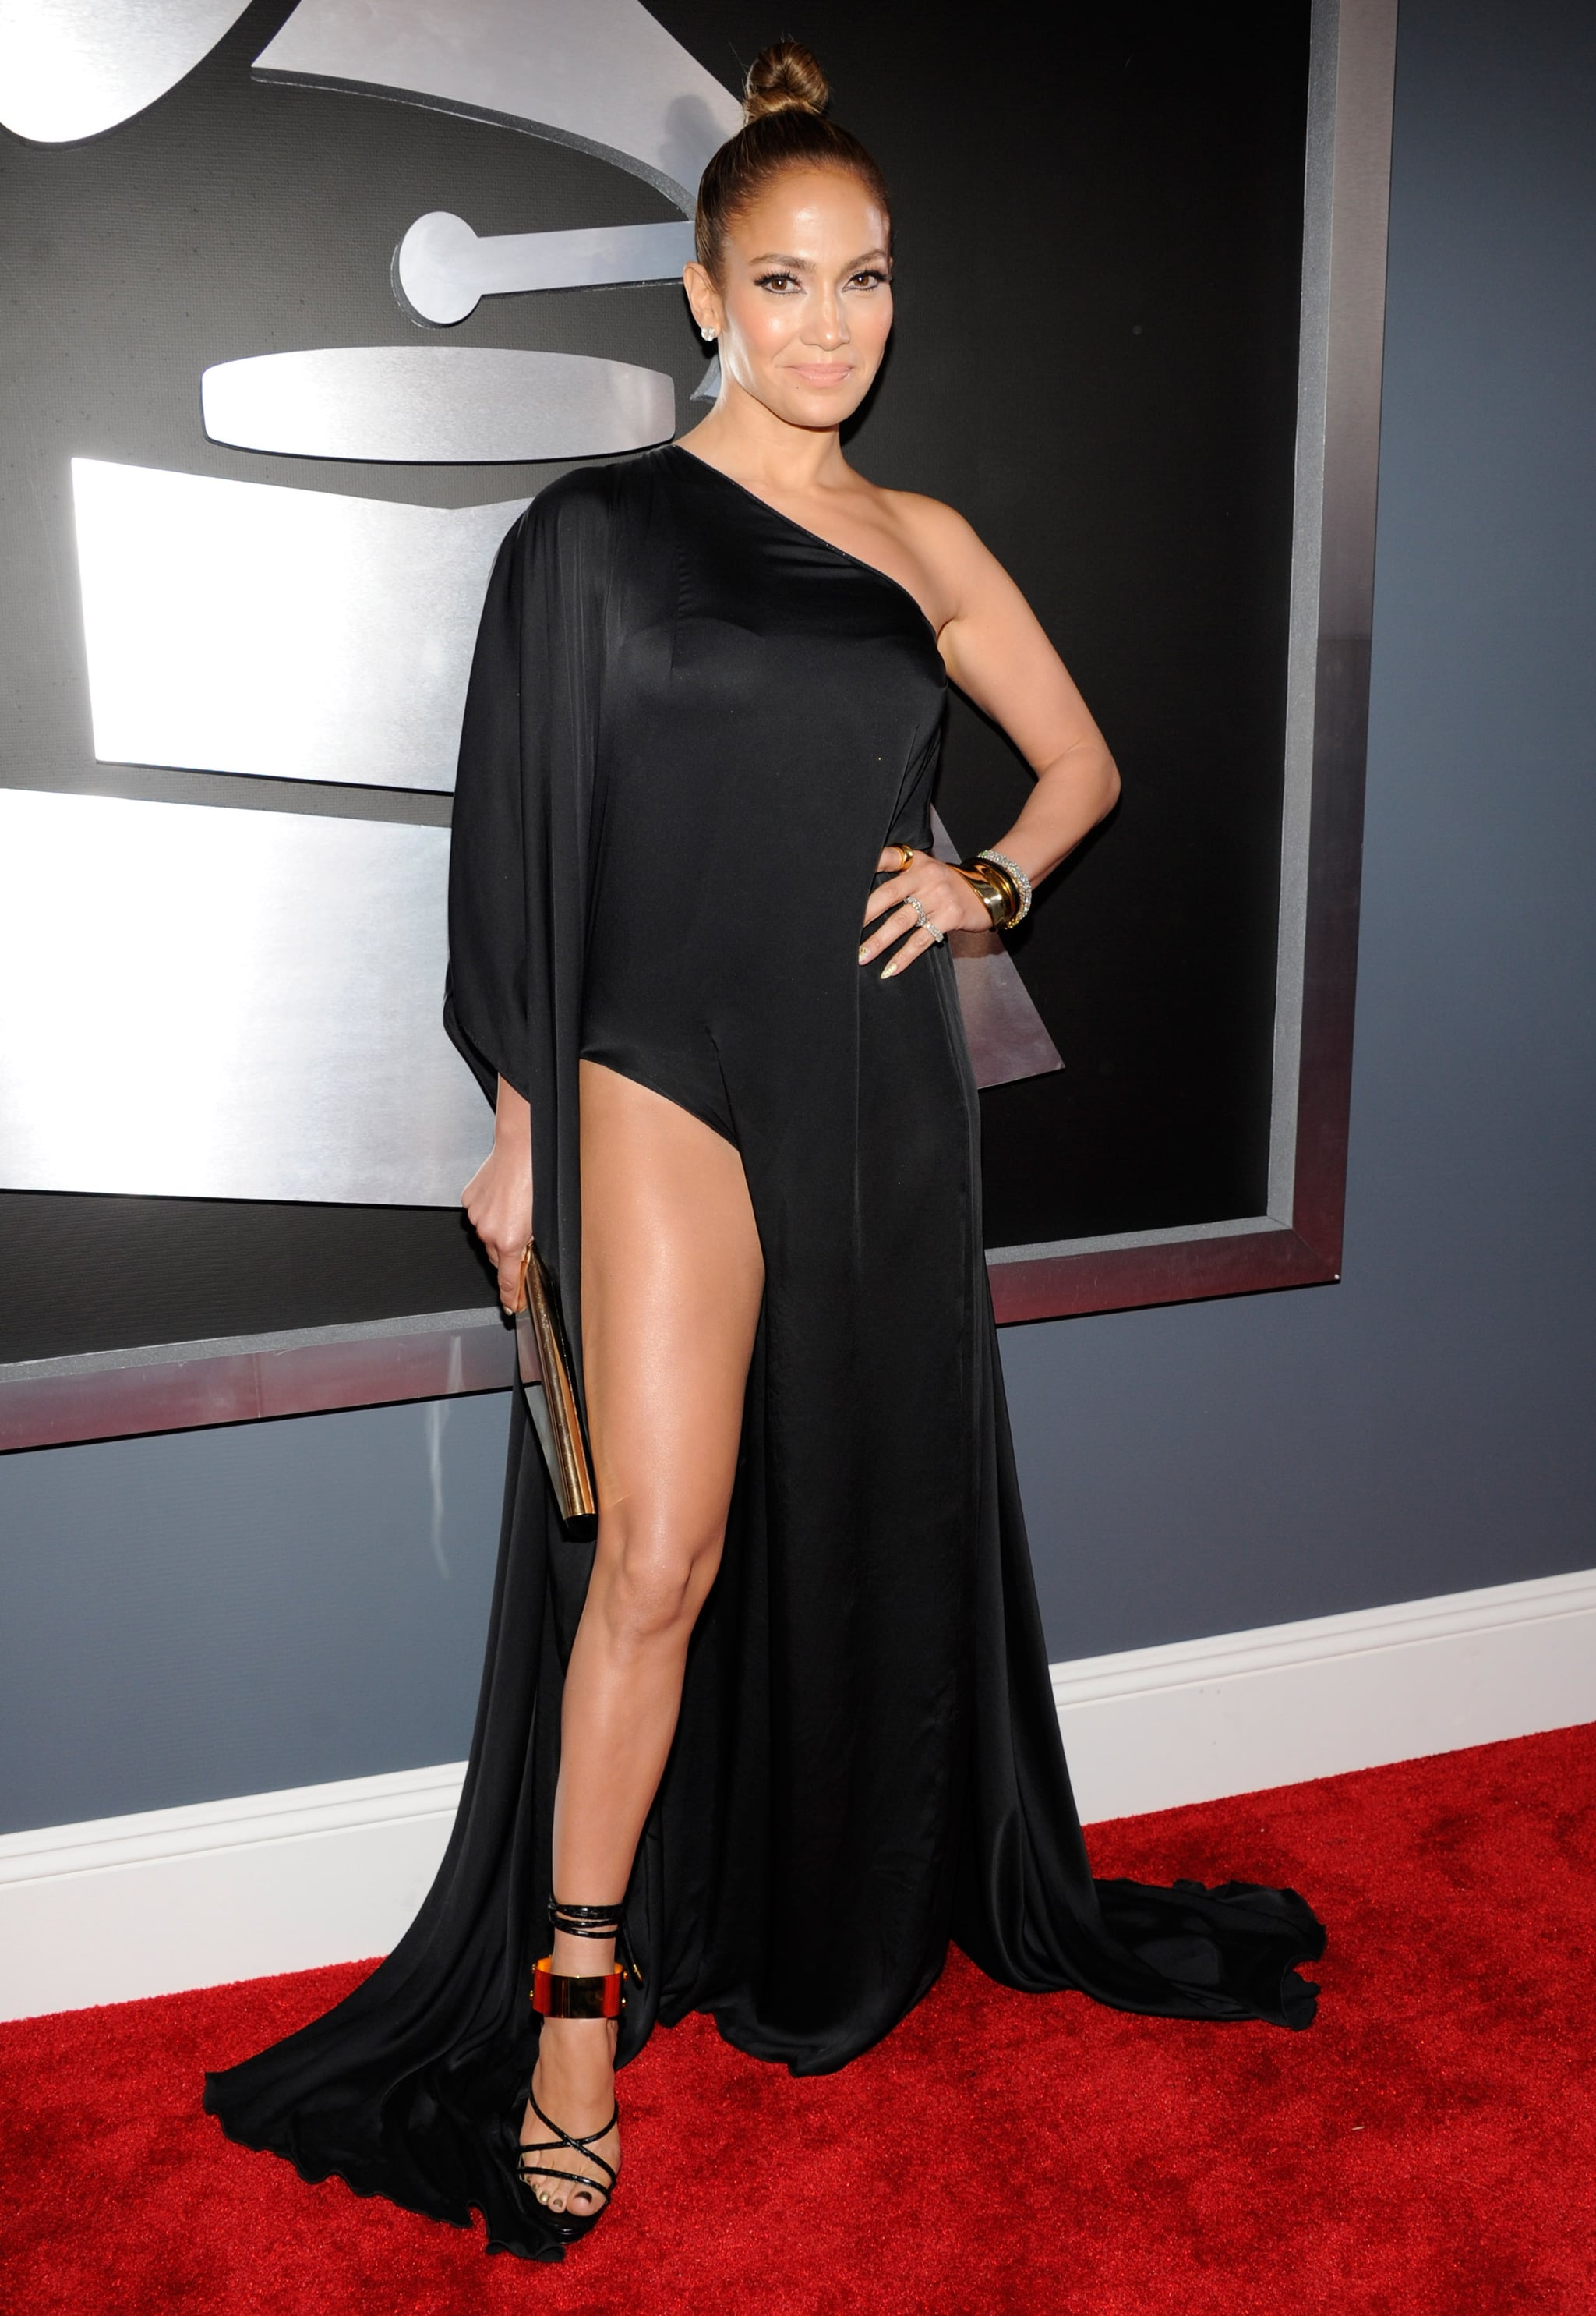 Jennifer Lopez showed off her legs in an Anthony Vaccarello gown with a high slit at the Grammys.